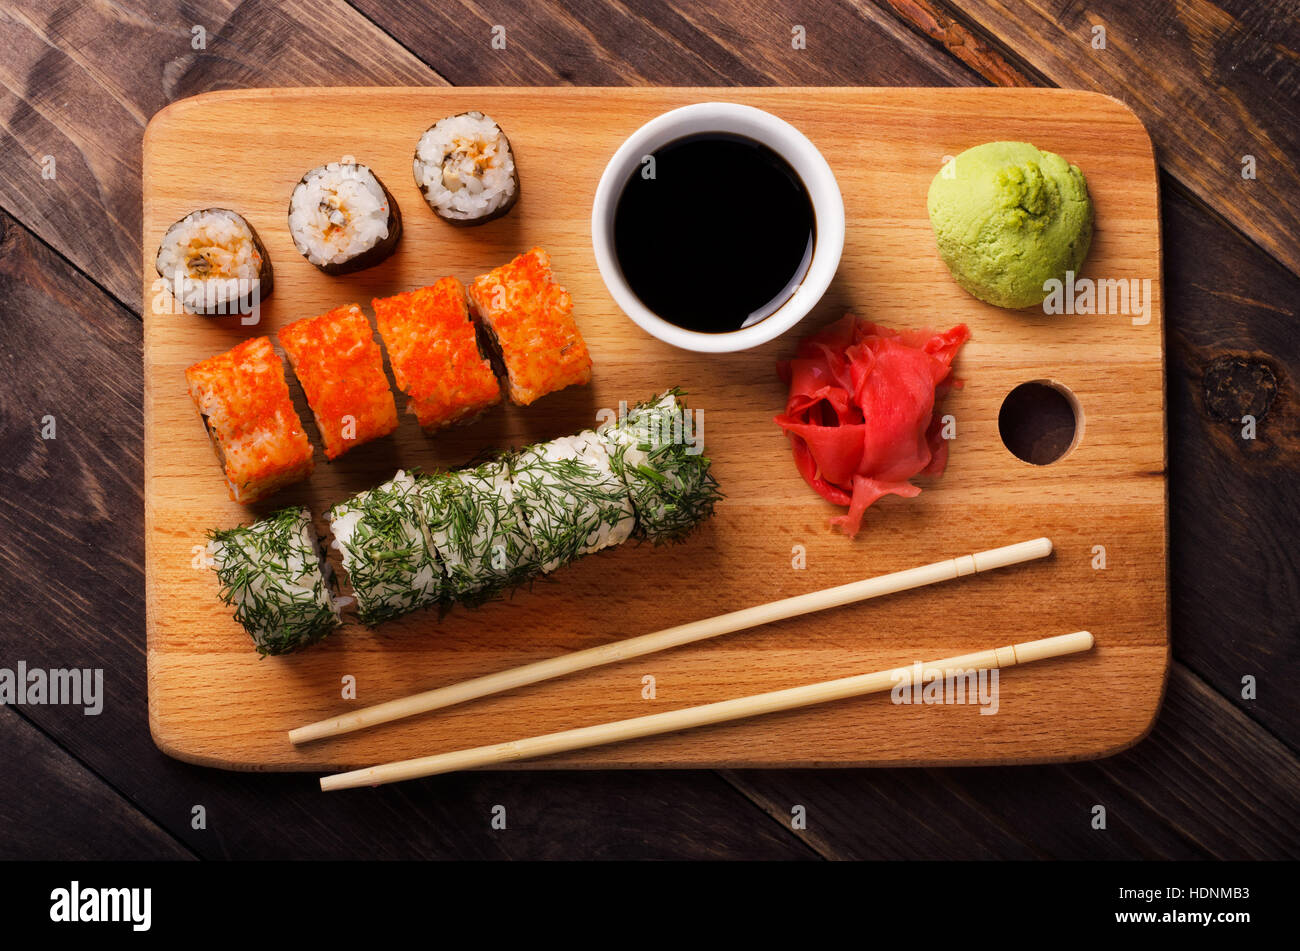 Sushi rolls with soy sauce, ginger and wasabi on cutting board close-up - Stock Image